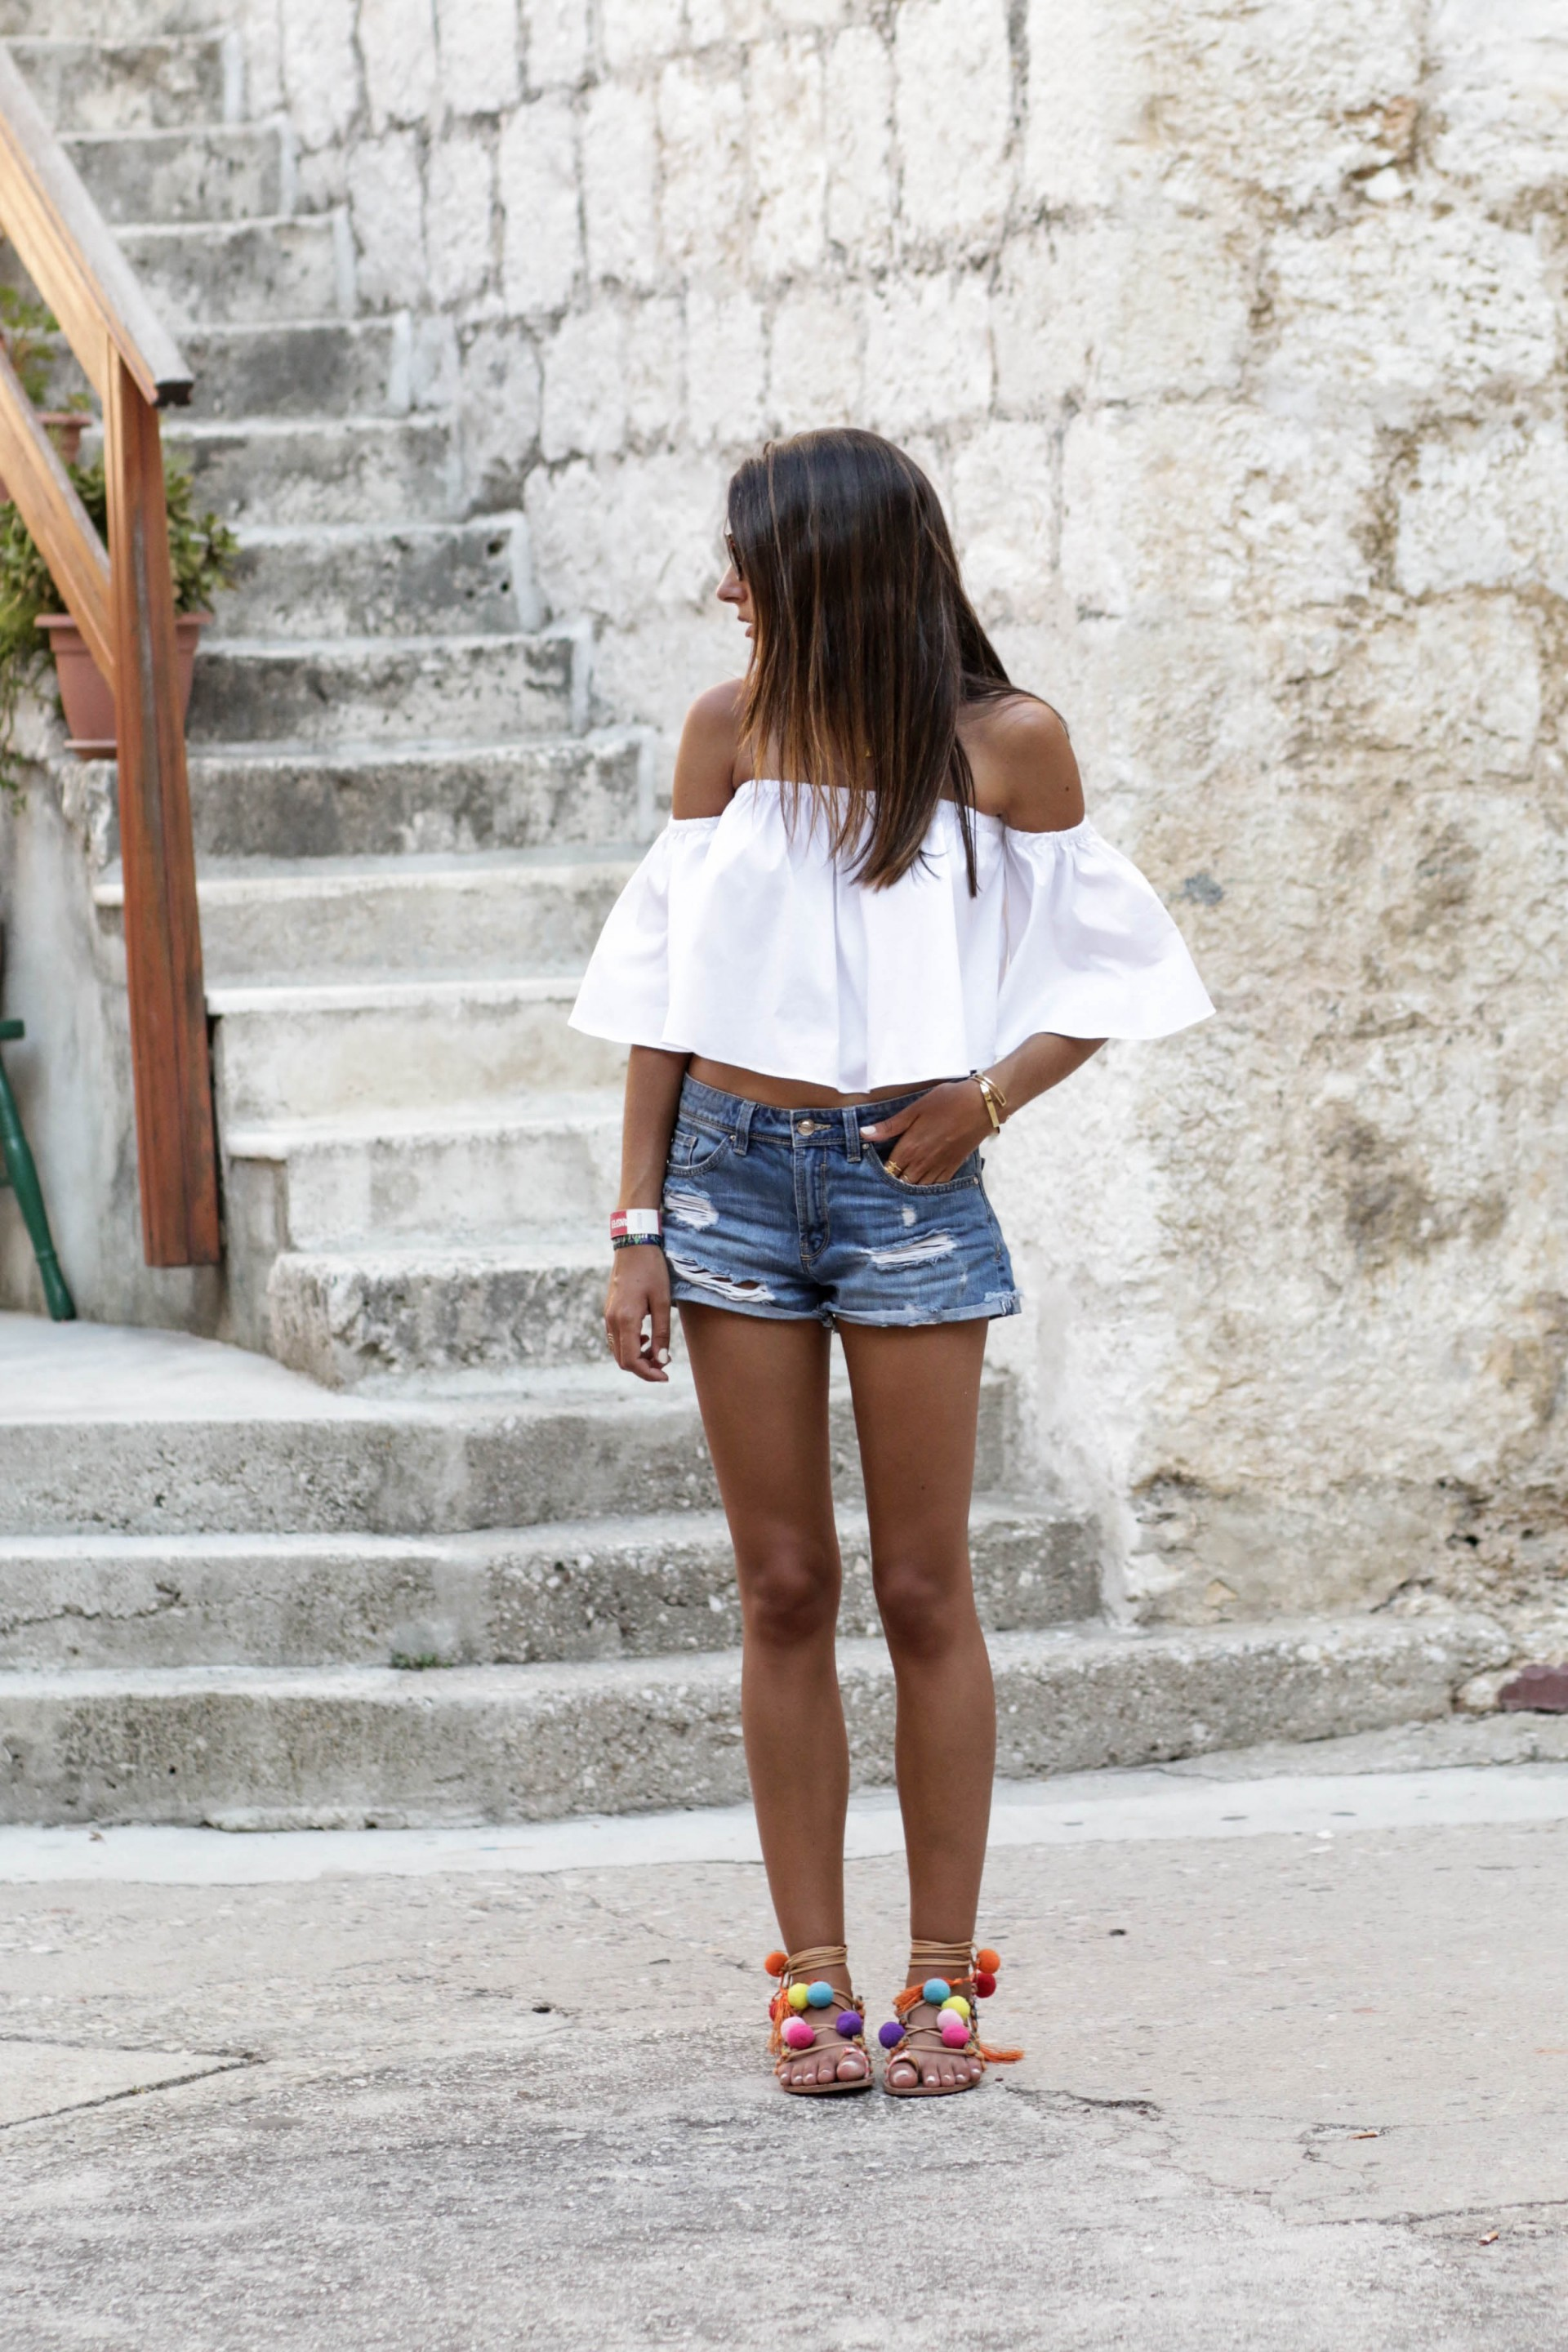 This Is How You Should Wear The Off-The-Shoulder Trend